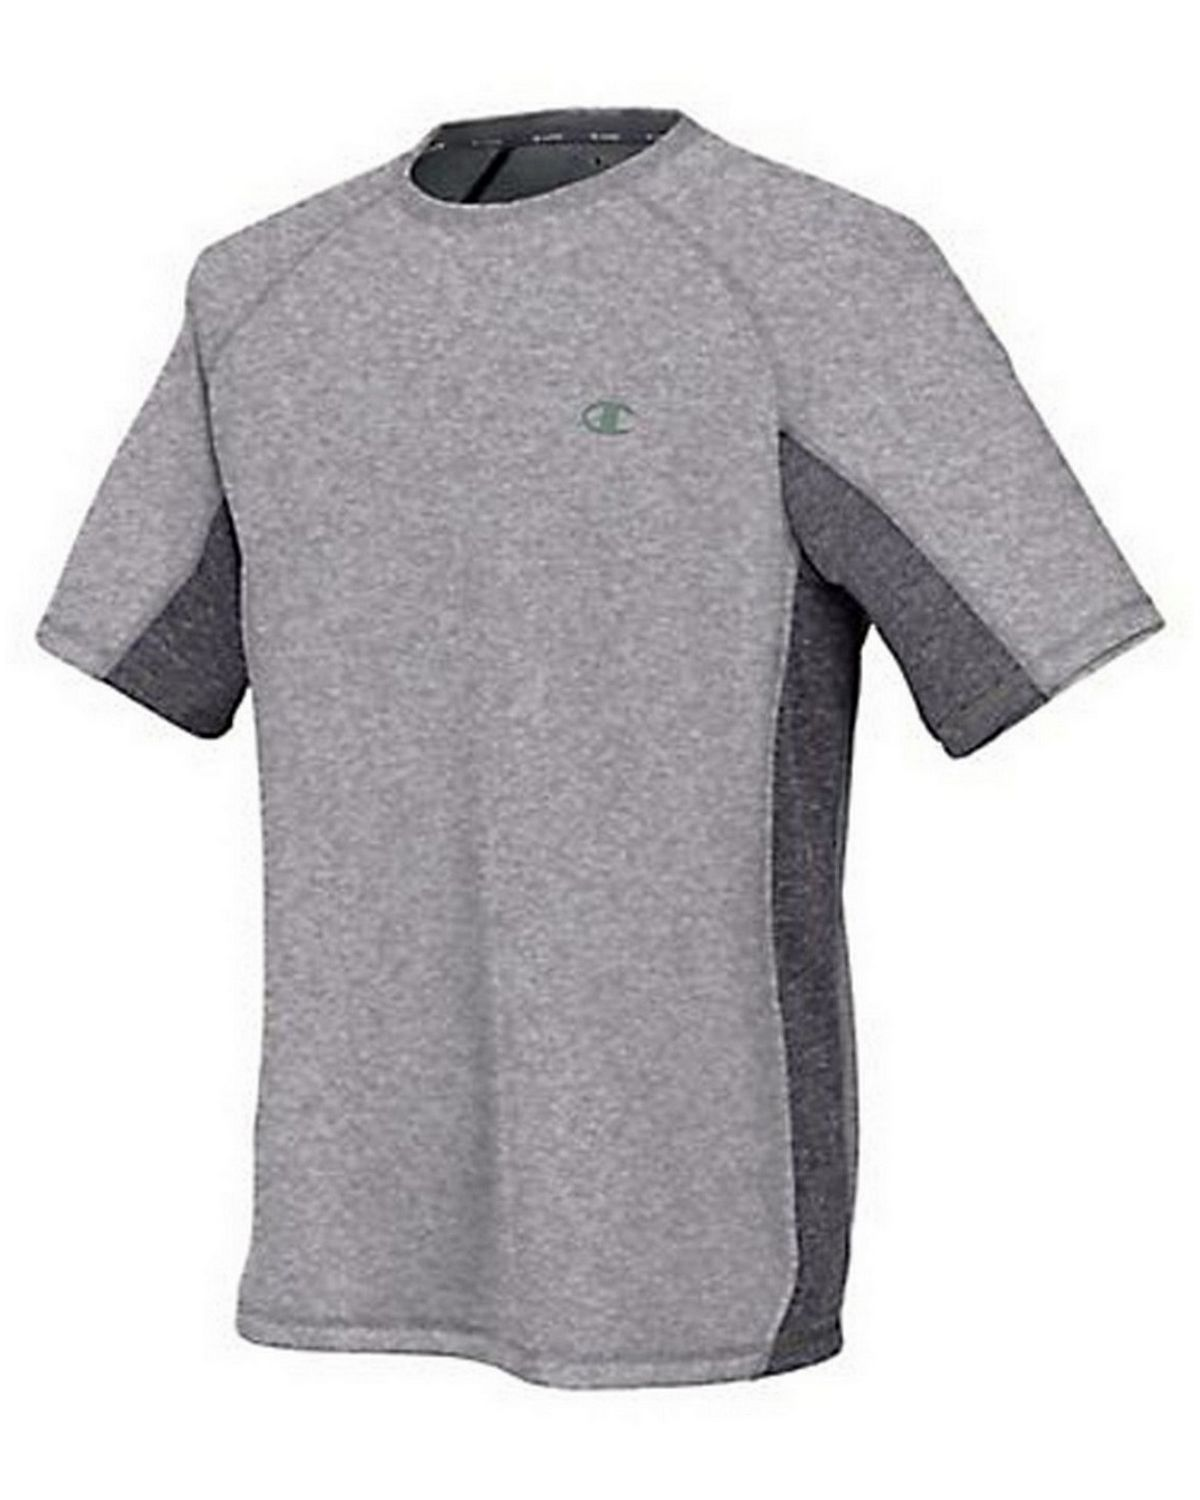 Champion T6608 Vapor PowerTrain Colorblock Tee - Oxford Grey/Granite Heather - S T6608